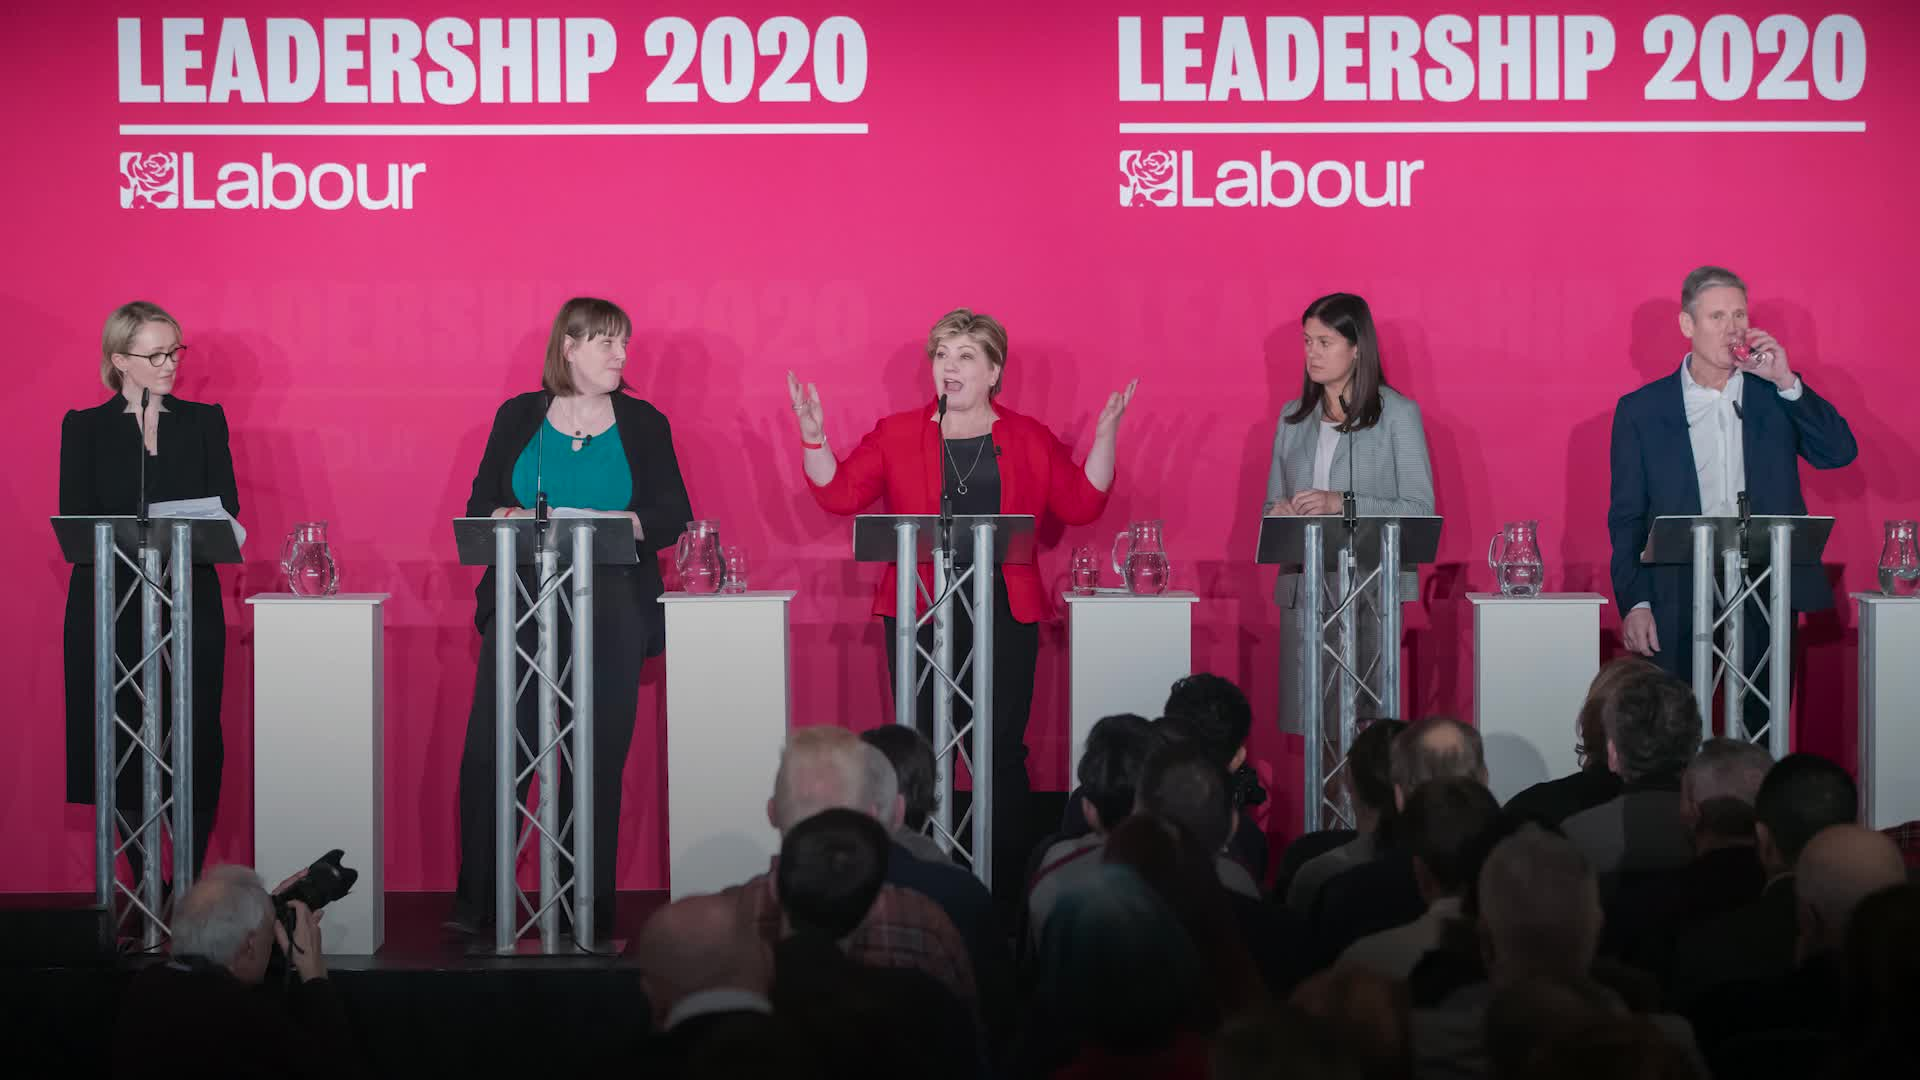 Exclusive: Labour Membership Surges By More Than 100,000 Ahead Of Leadership Vote